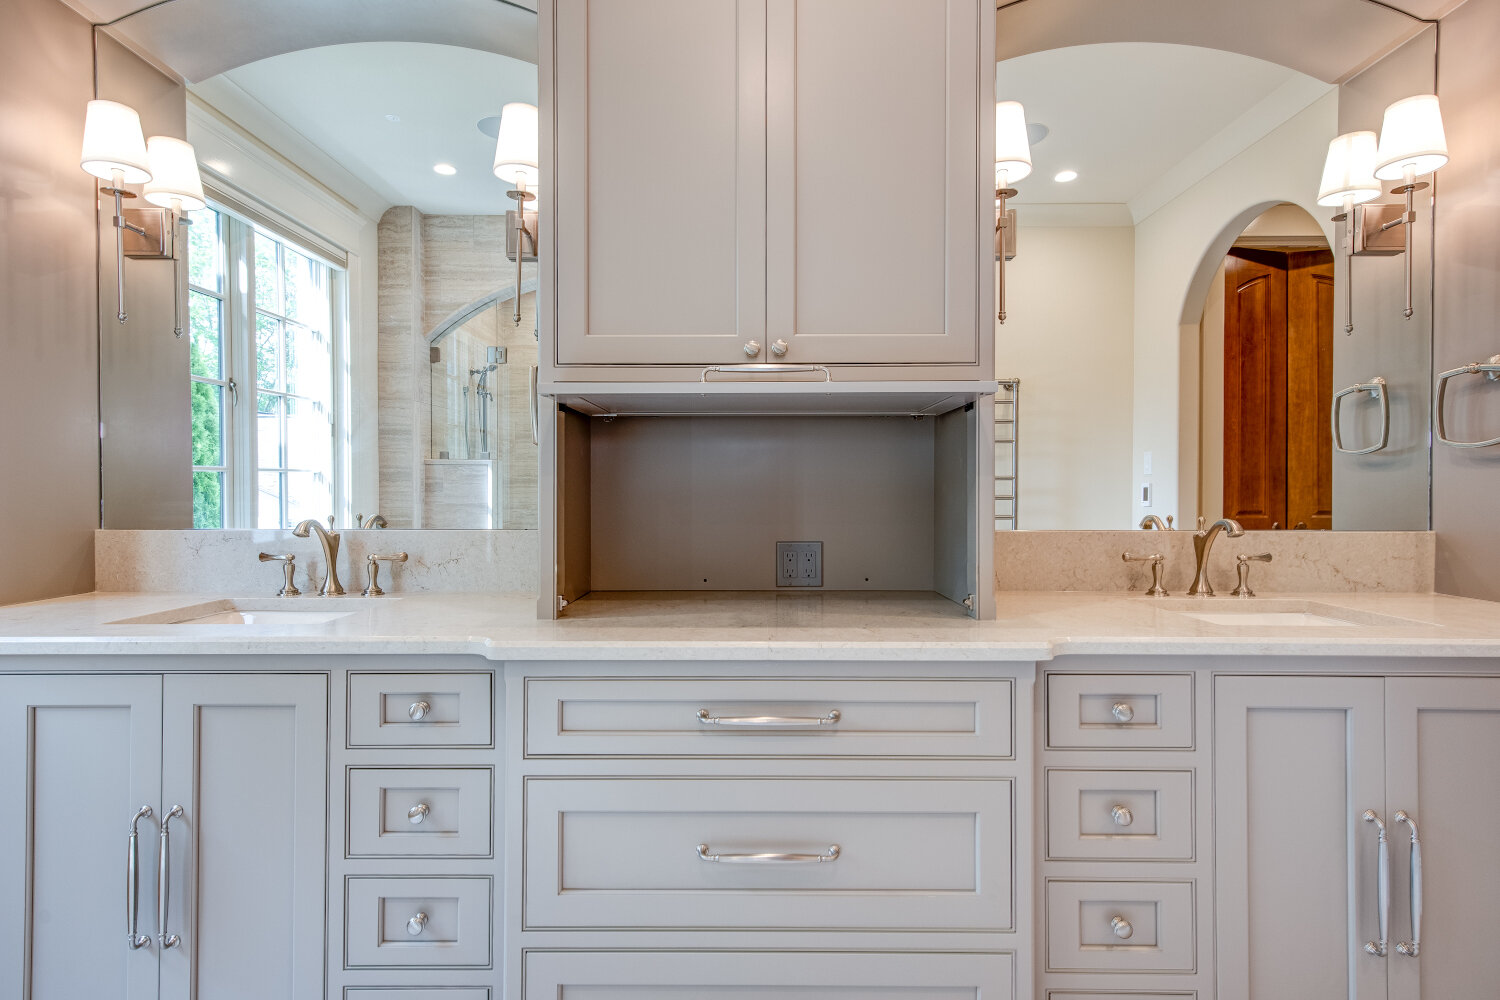 Sherwood Drive Sticks 2 Stones Design Custom Cabinetry In Knoxville Tennessee Custom Kitchen Cabinets Knoxville Cabinet Companies In Knoxville Tn Cabinet Installation Knoxville Tn Kitchen Countertops